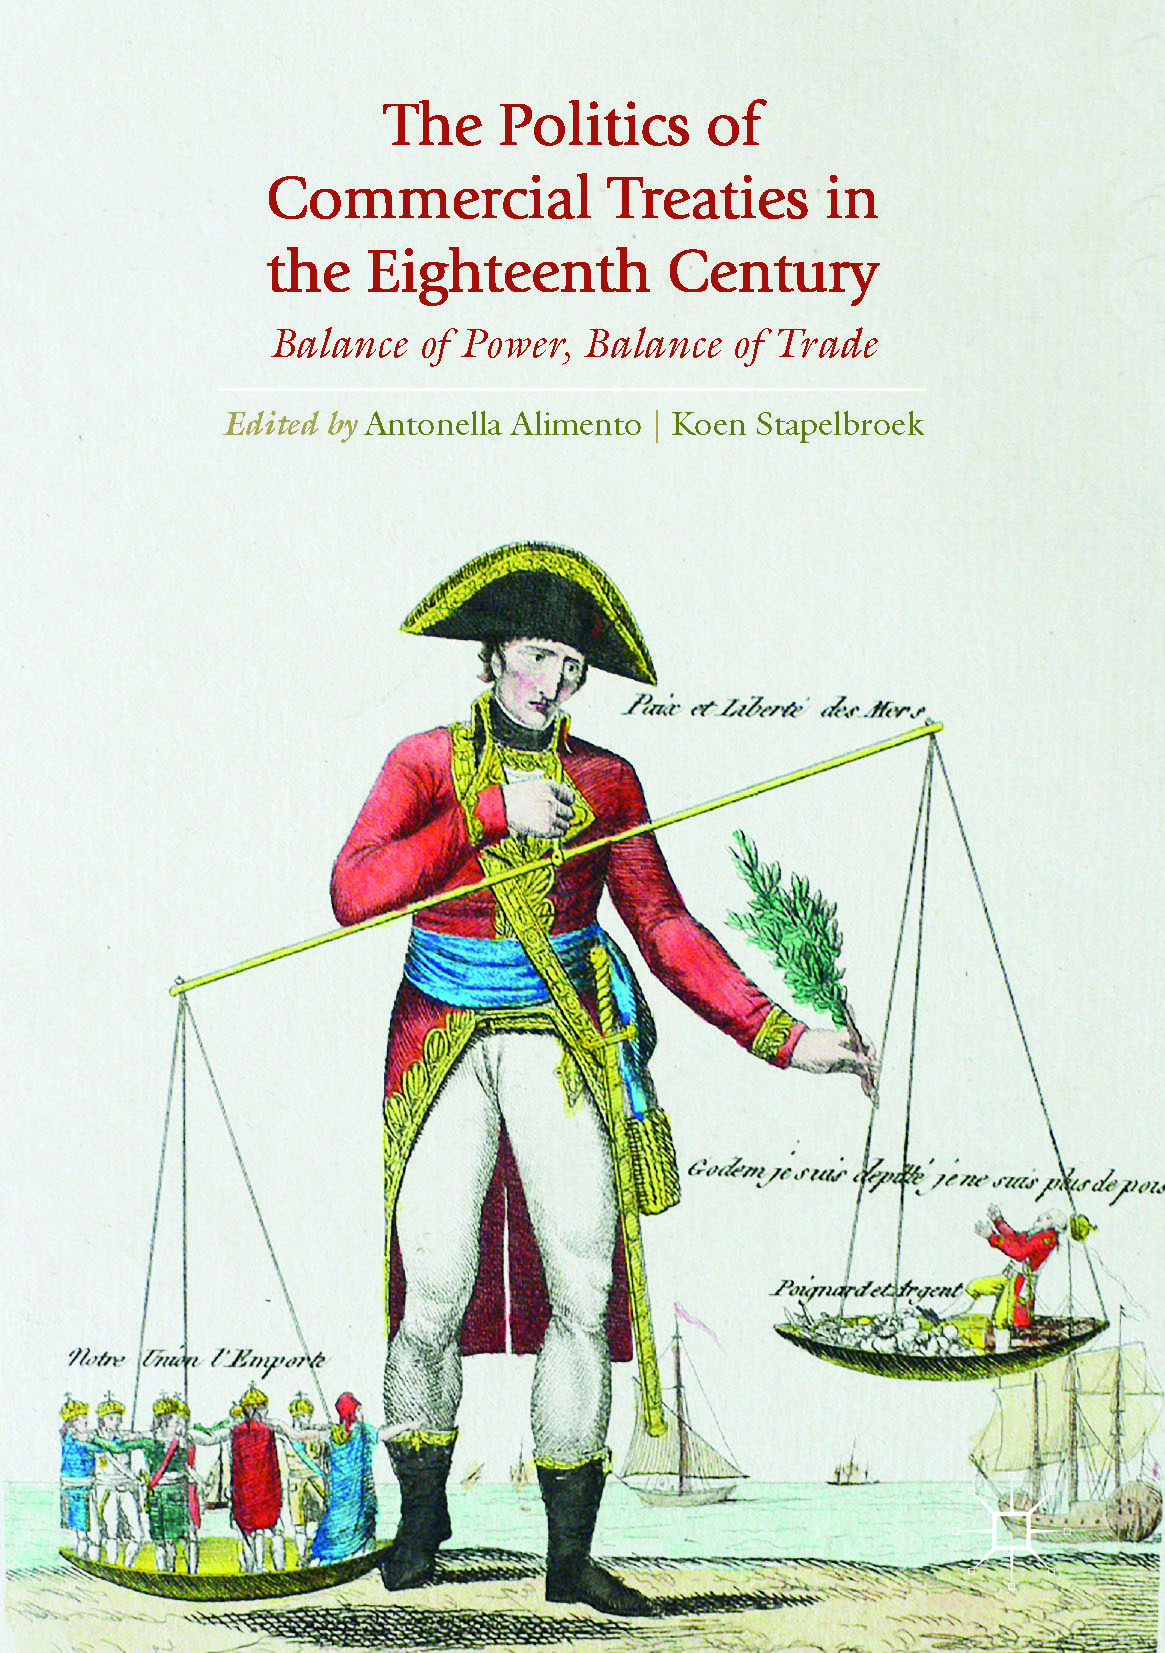 Alimento, Antonella - The Politics of Commercial Treaties in the Eighteenth Century, ebook